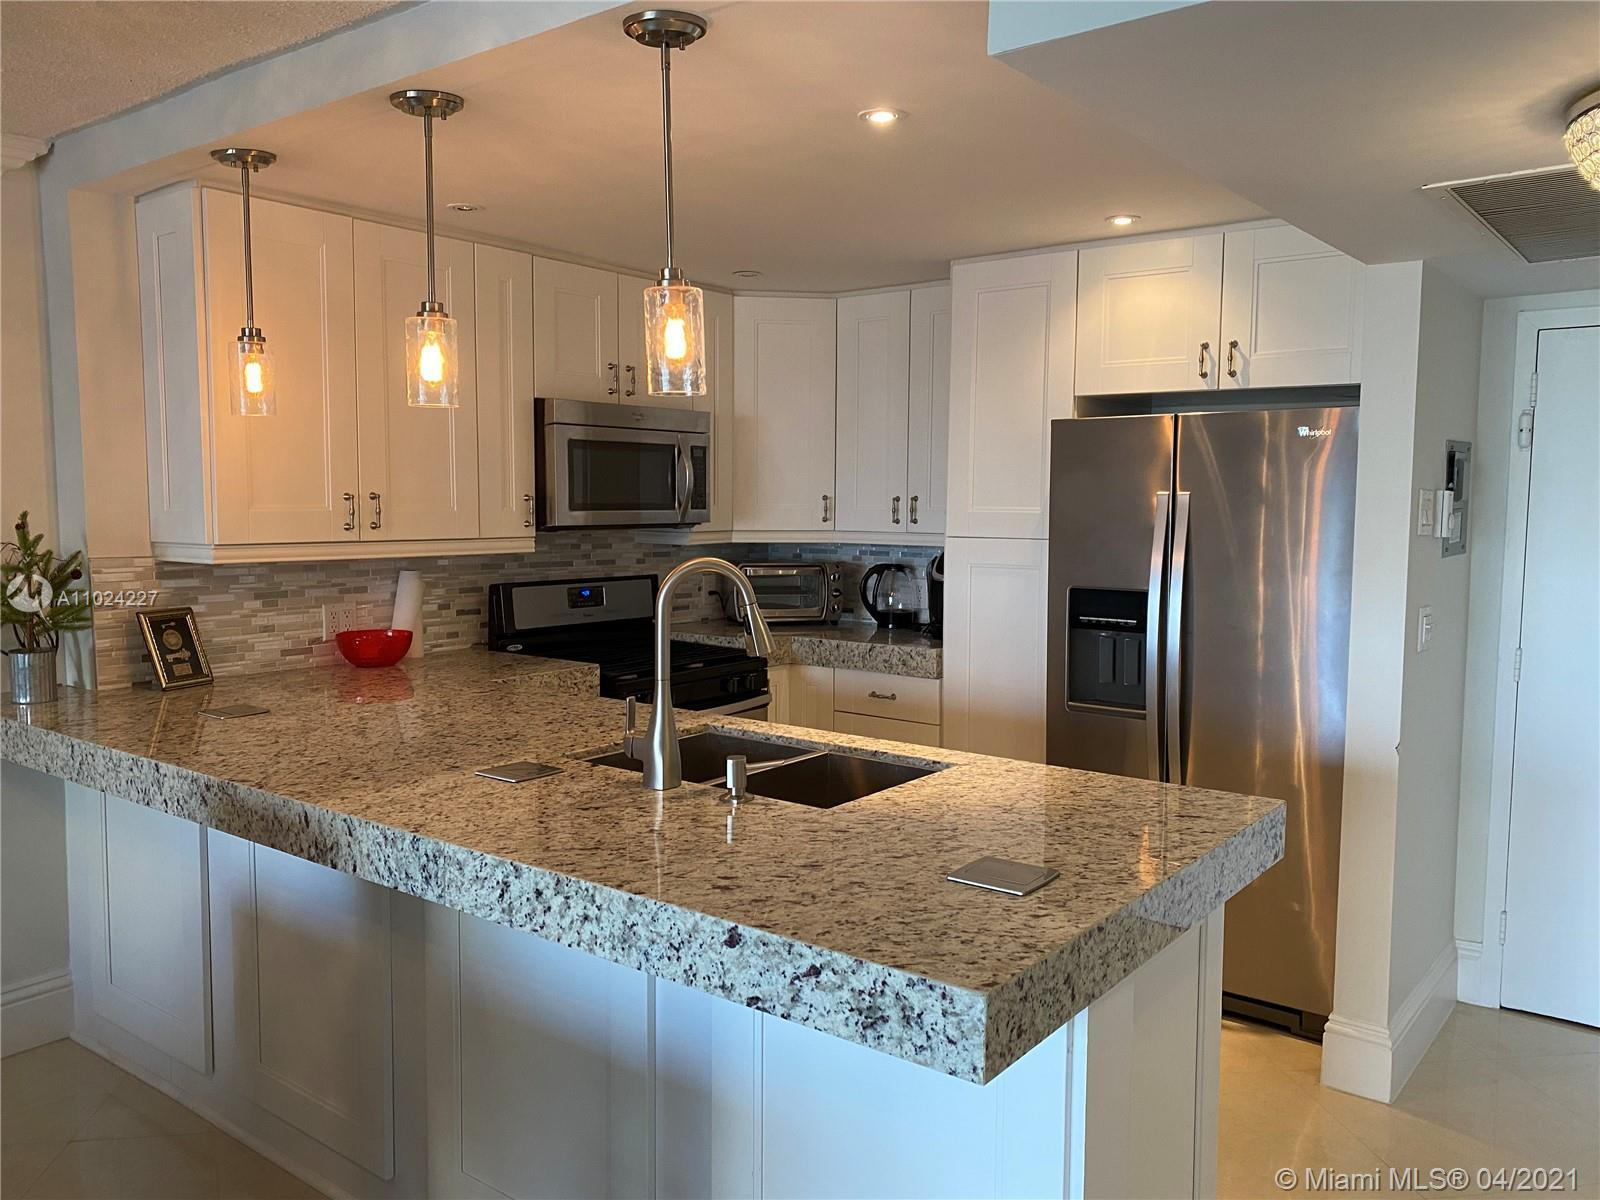 COMPLETELY REMODELED UNIT FEATURES, DESIGNER KITCHEN, REMODELED FULL AND HALF BATHROOMS. ALL TILED F